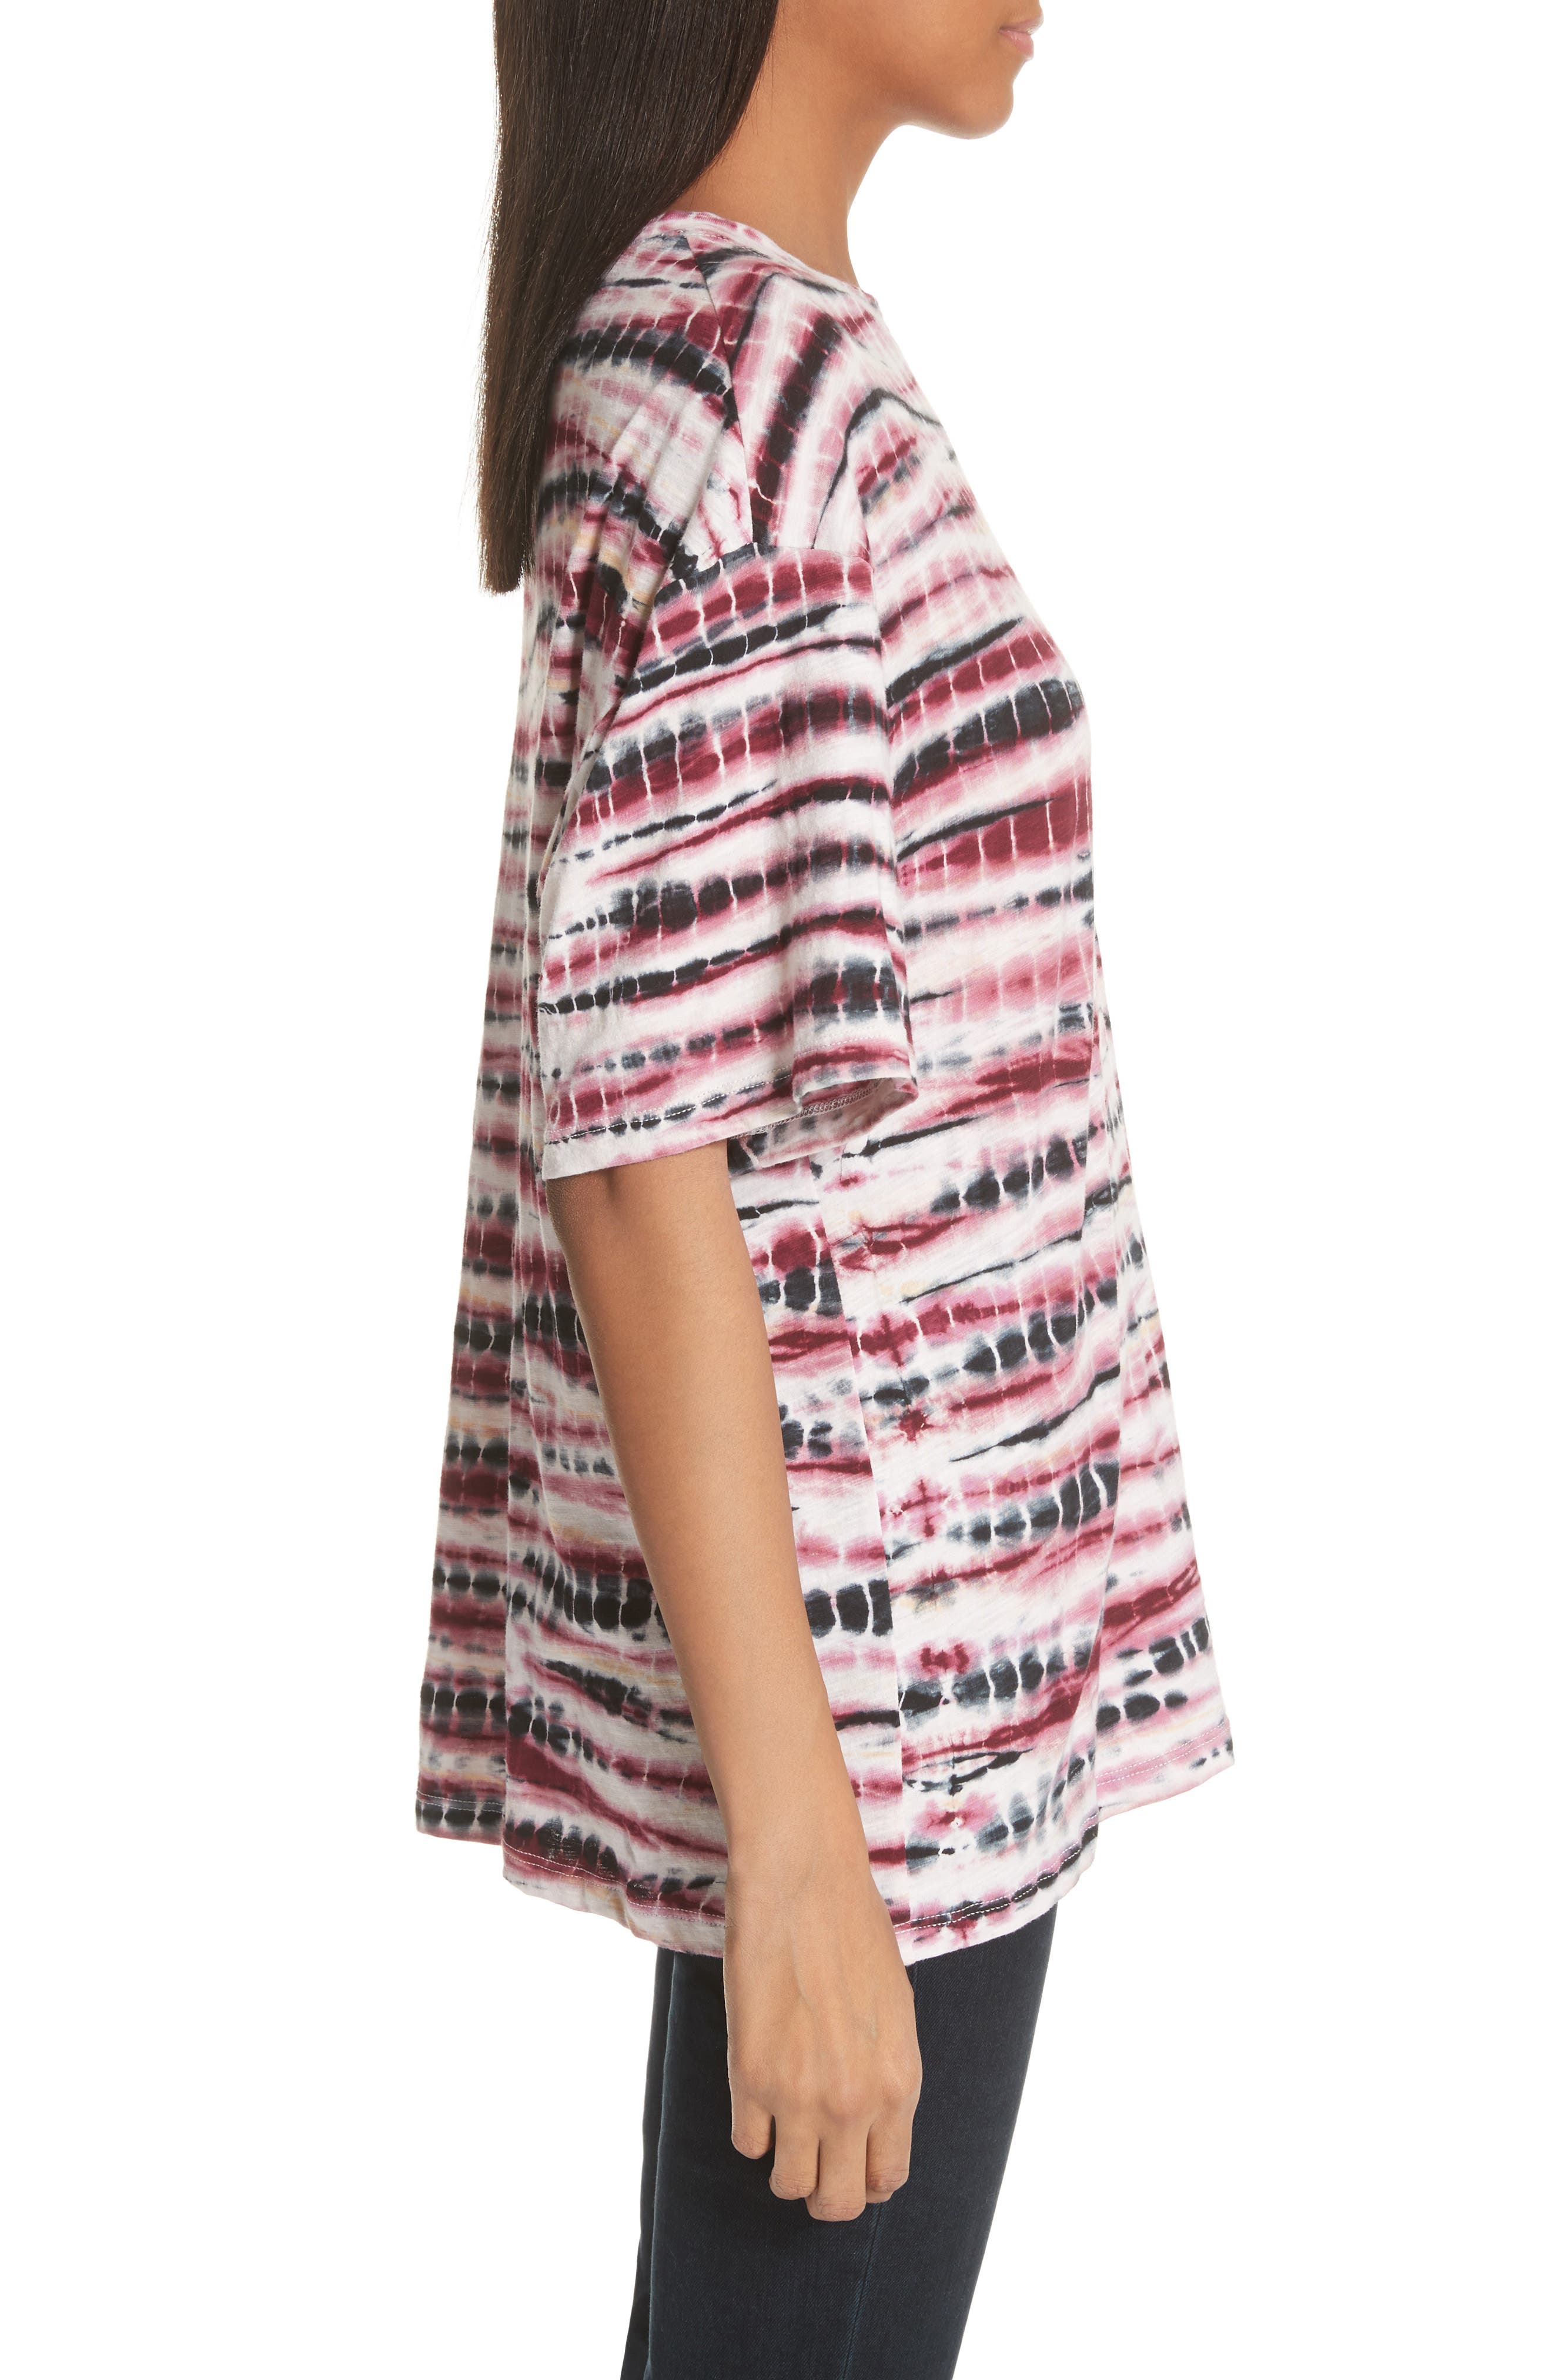 PROENZA SCHOULER,                             Tie Dye Tissue Jersey Tee,                             Alternate thumbnail 3, color,                             930